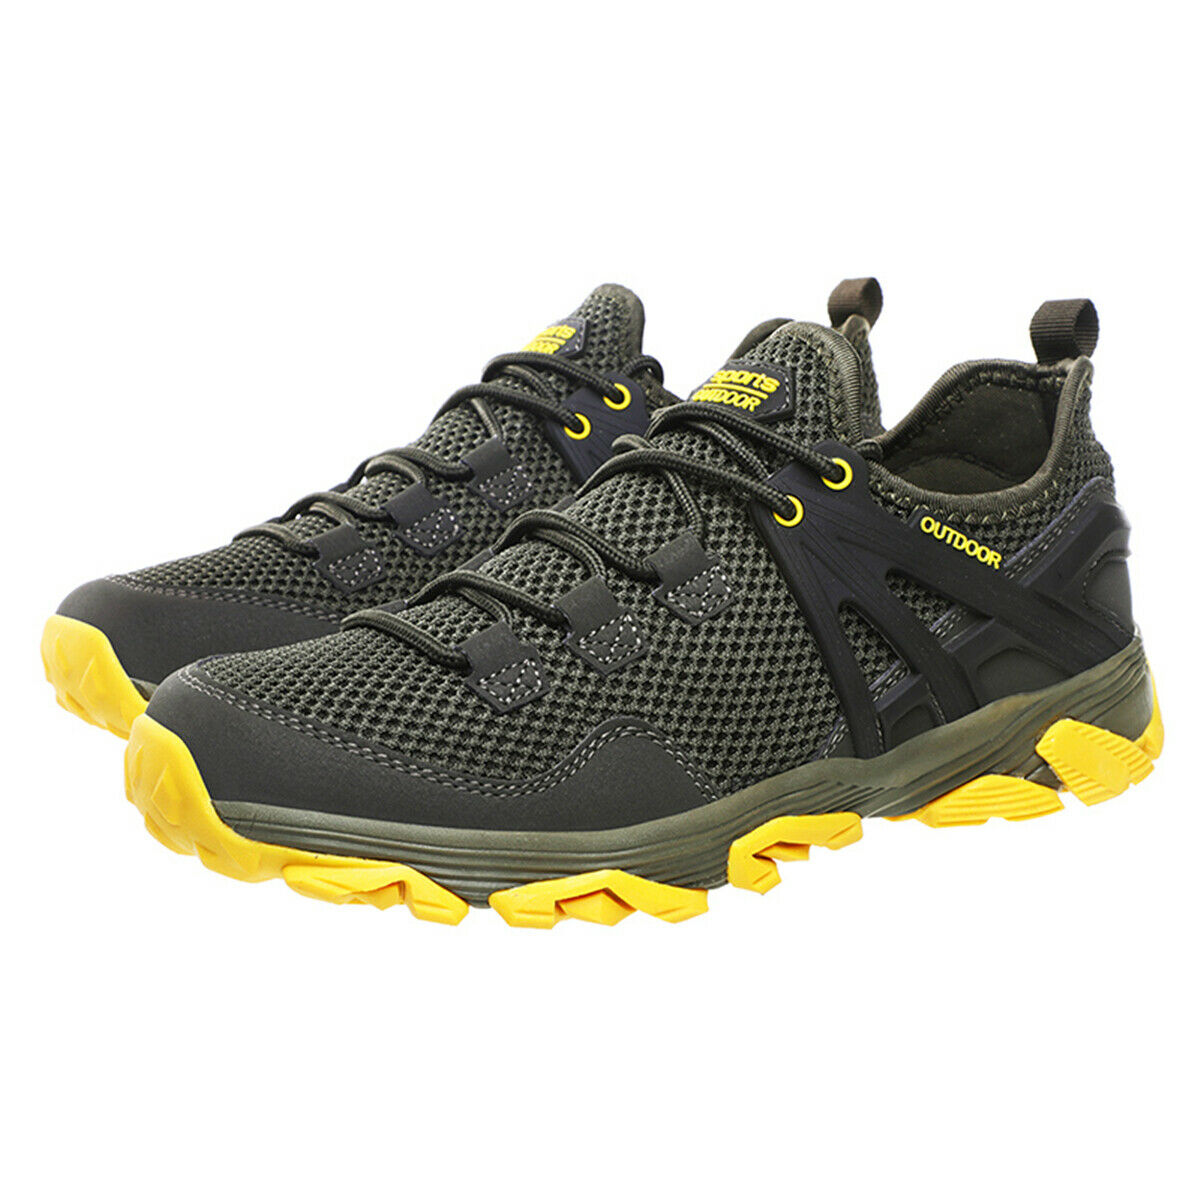 Hiking Running Climbing shoes Mens Low Top Casual Outdoor Fashion Sneakers shoes